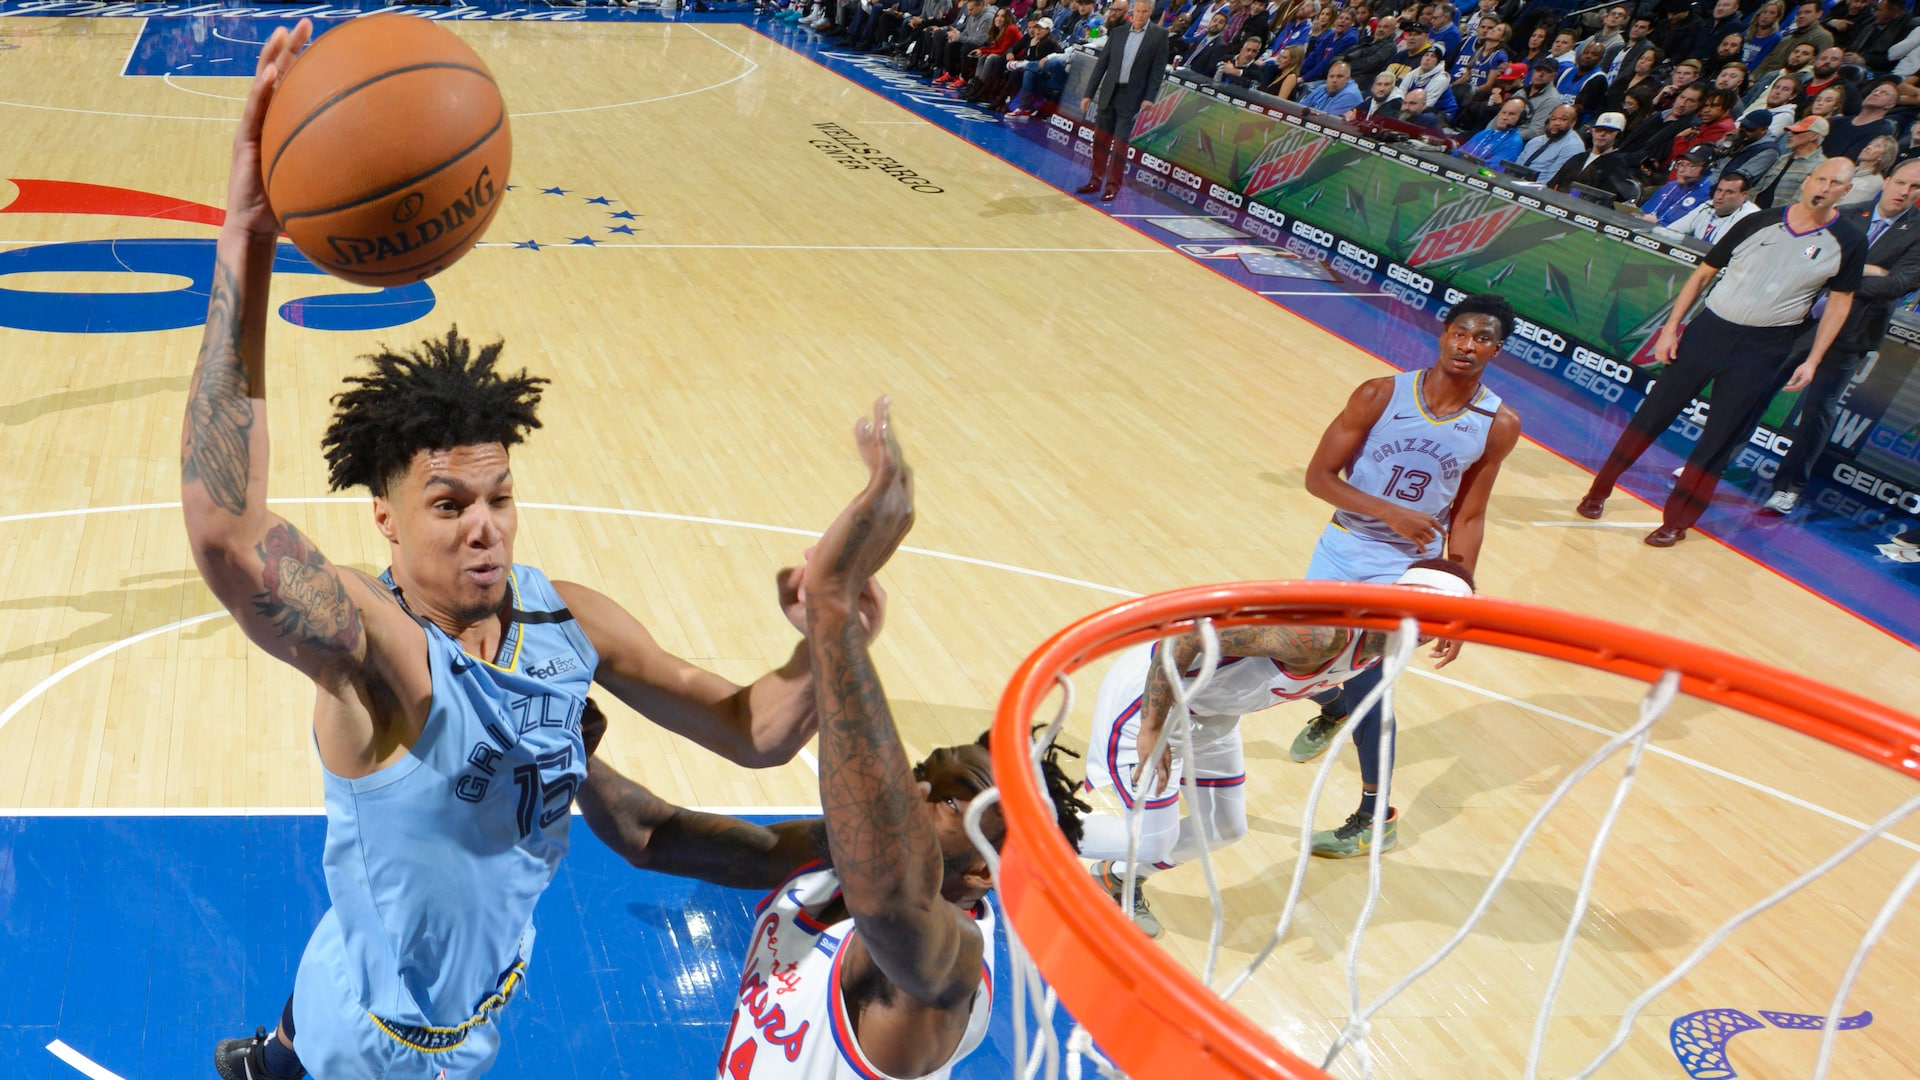 Grizzlies rookie Brandon Clarke out with injured quadriceps